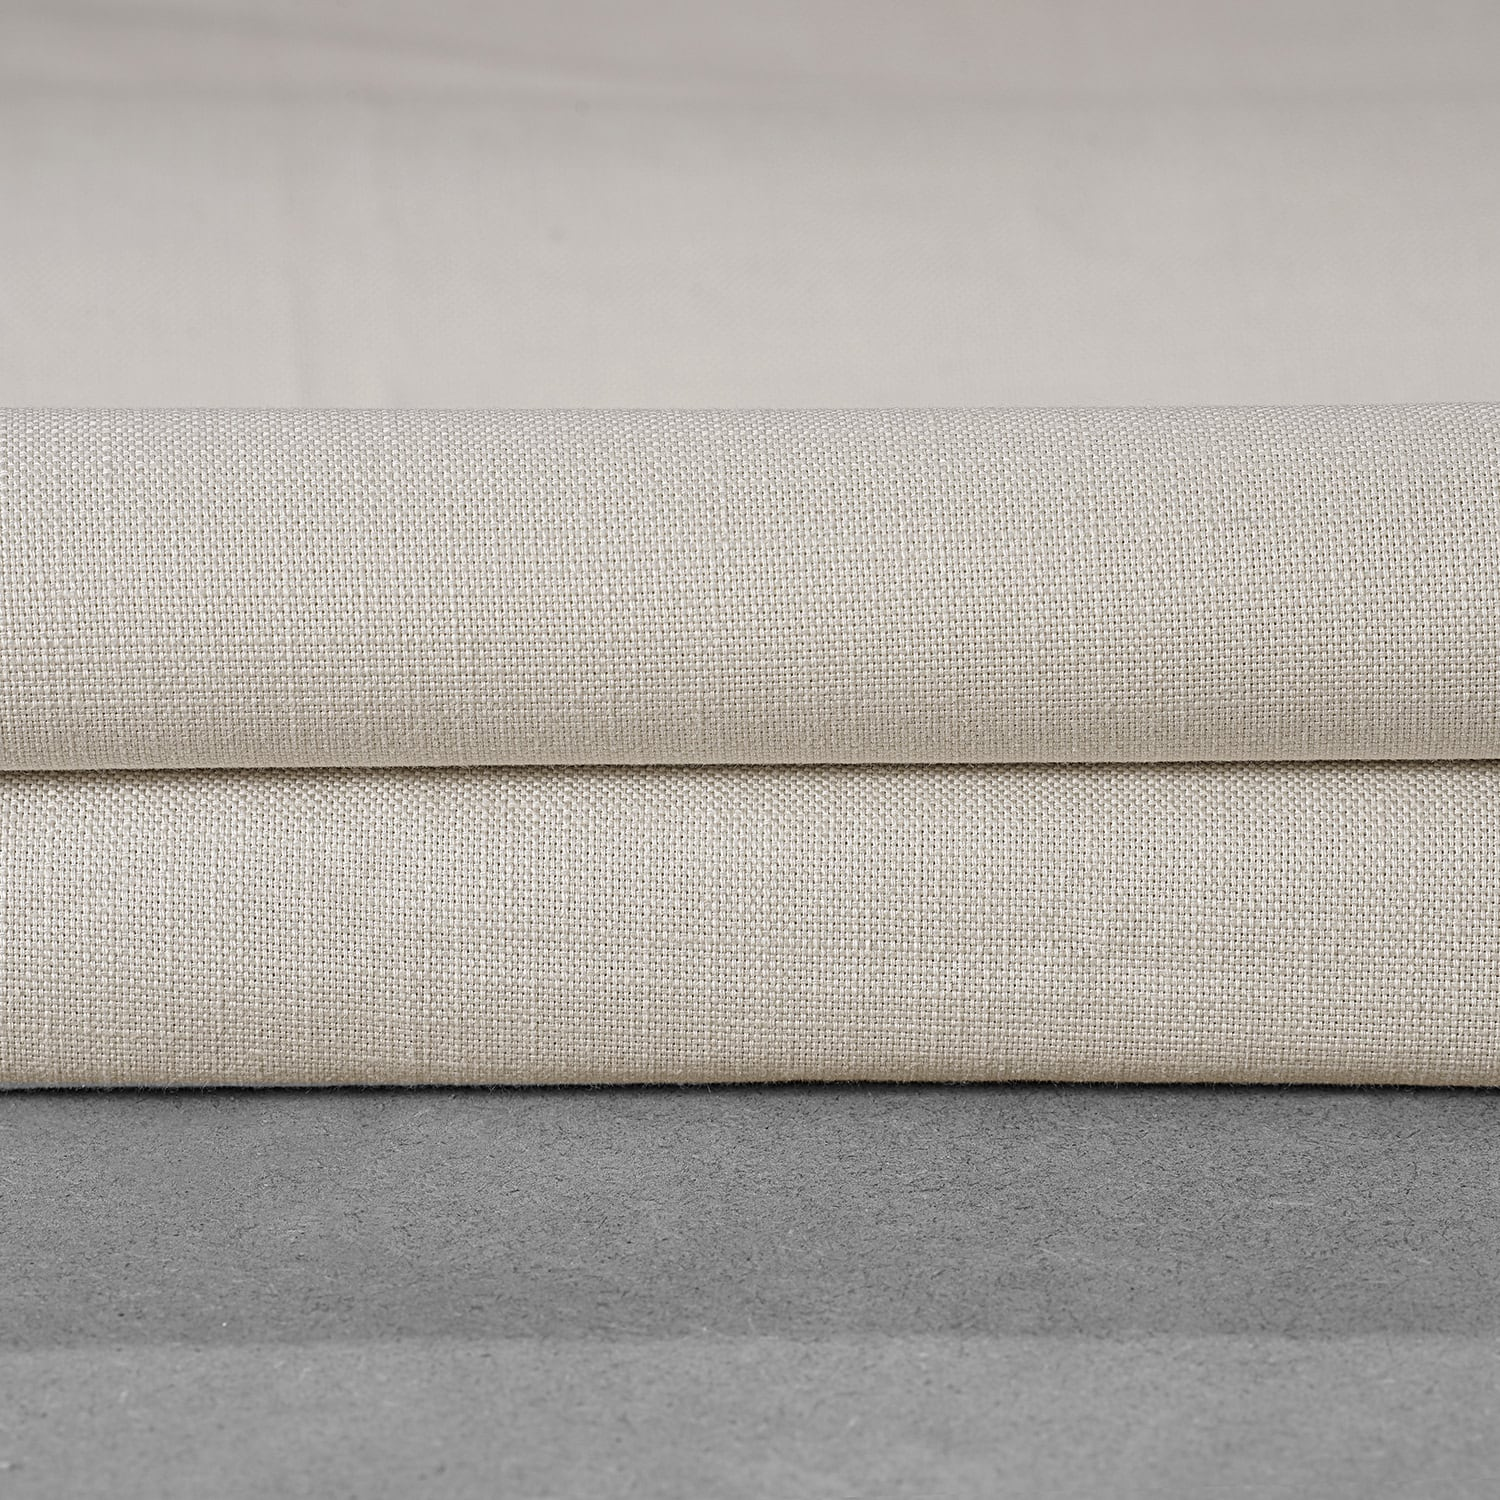 Fable Beige Dune Textured Solid Cotton Swatch